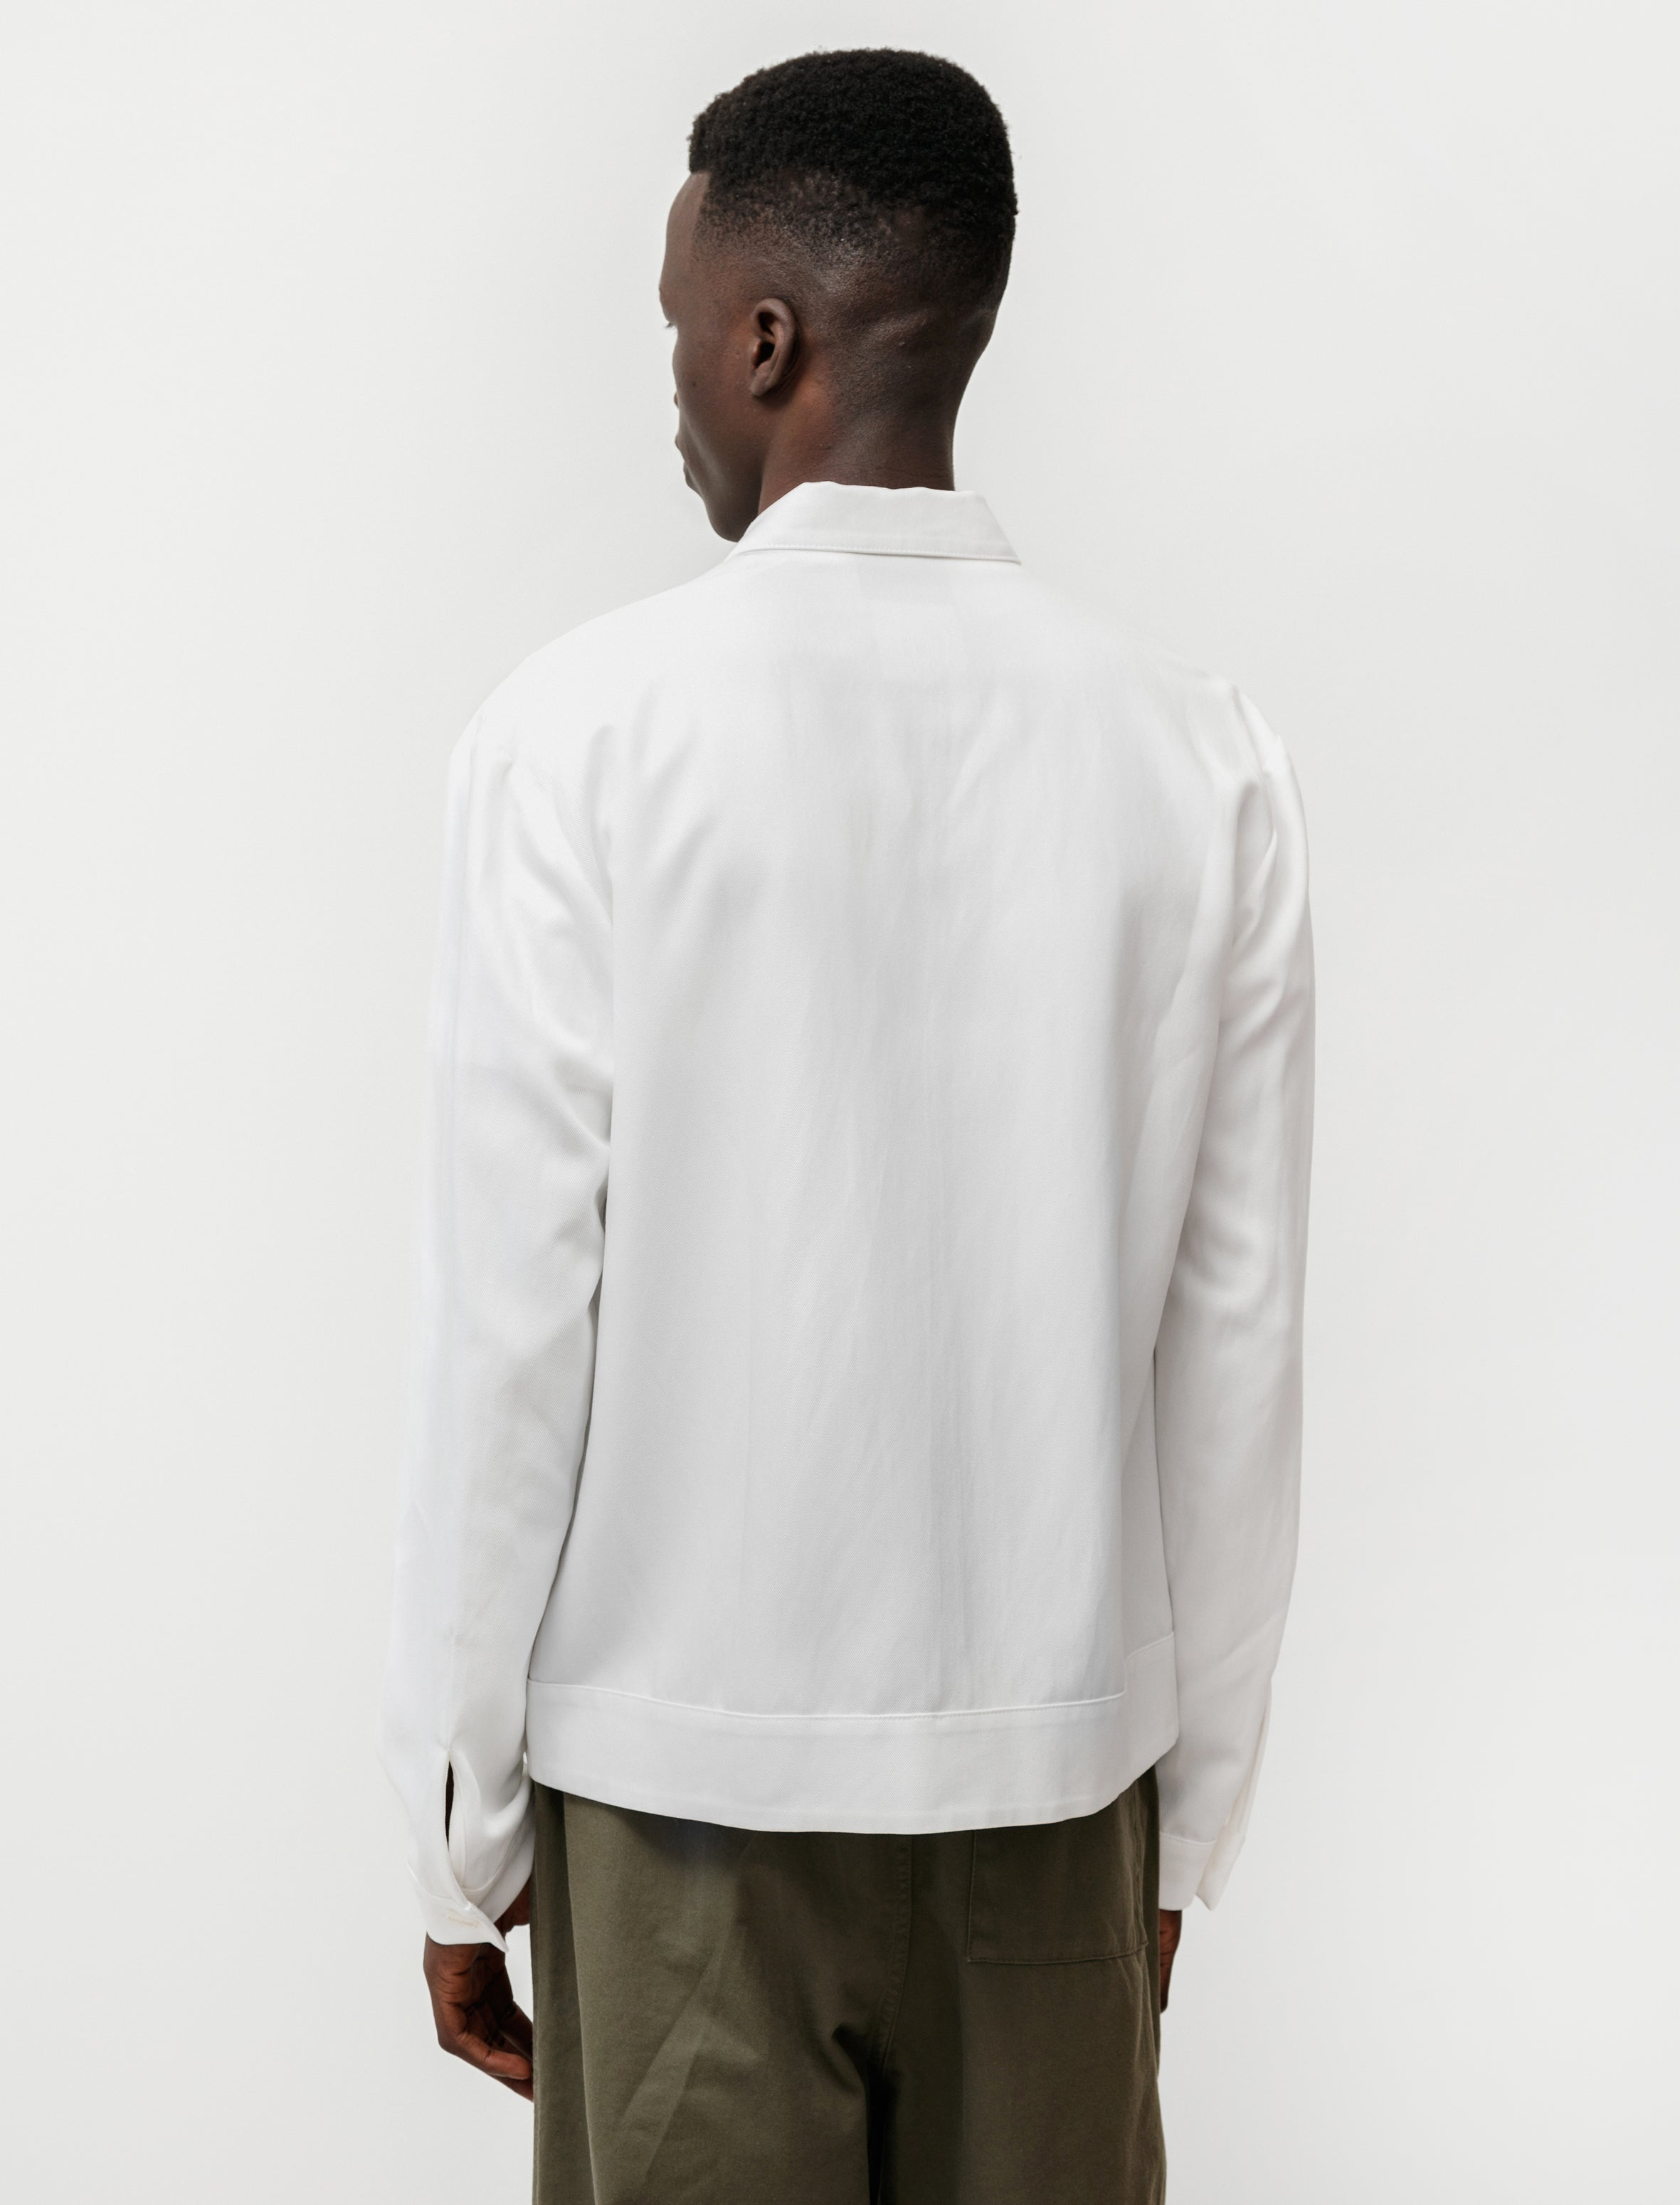 Stephan Schneider Jacket Quartz White